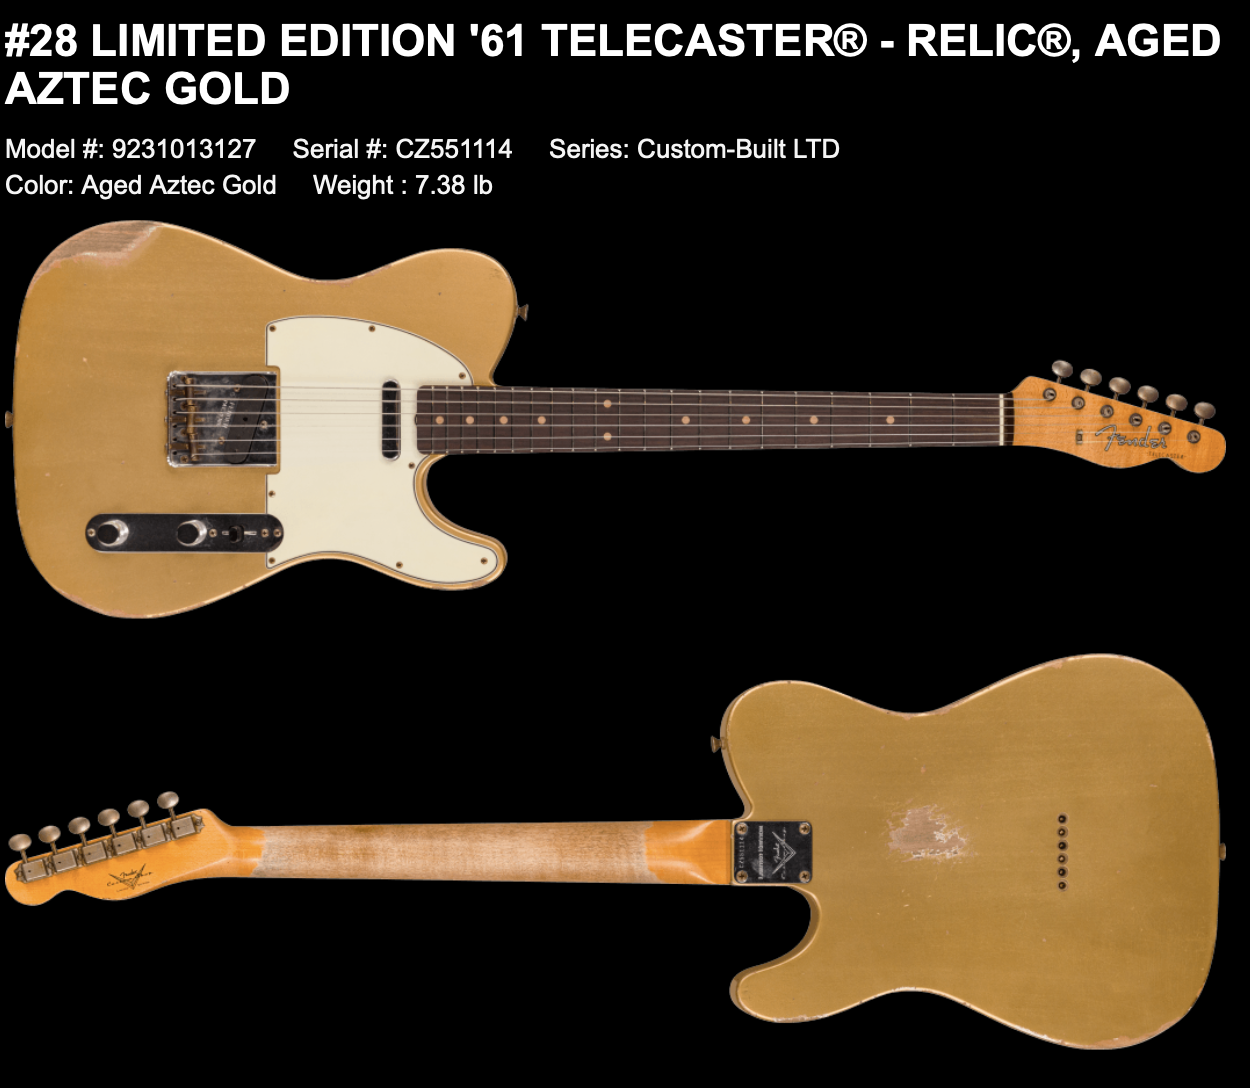 (PRE-ORDER) FENDER CUSTOM SHOP LIMITED EDITION '61 TELECASTER  RELIC IN AGED AZTEC GOLD